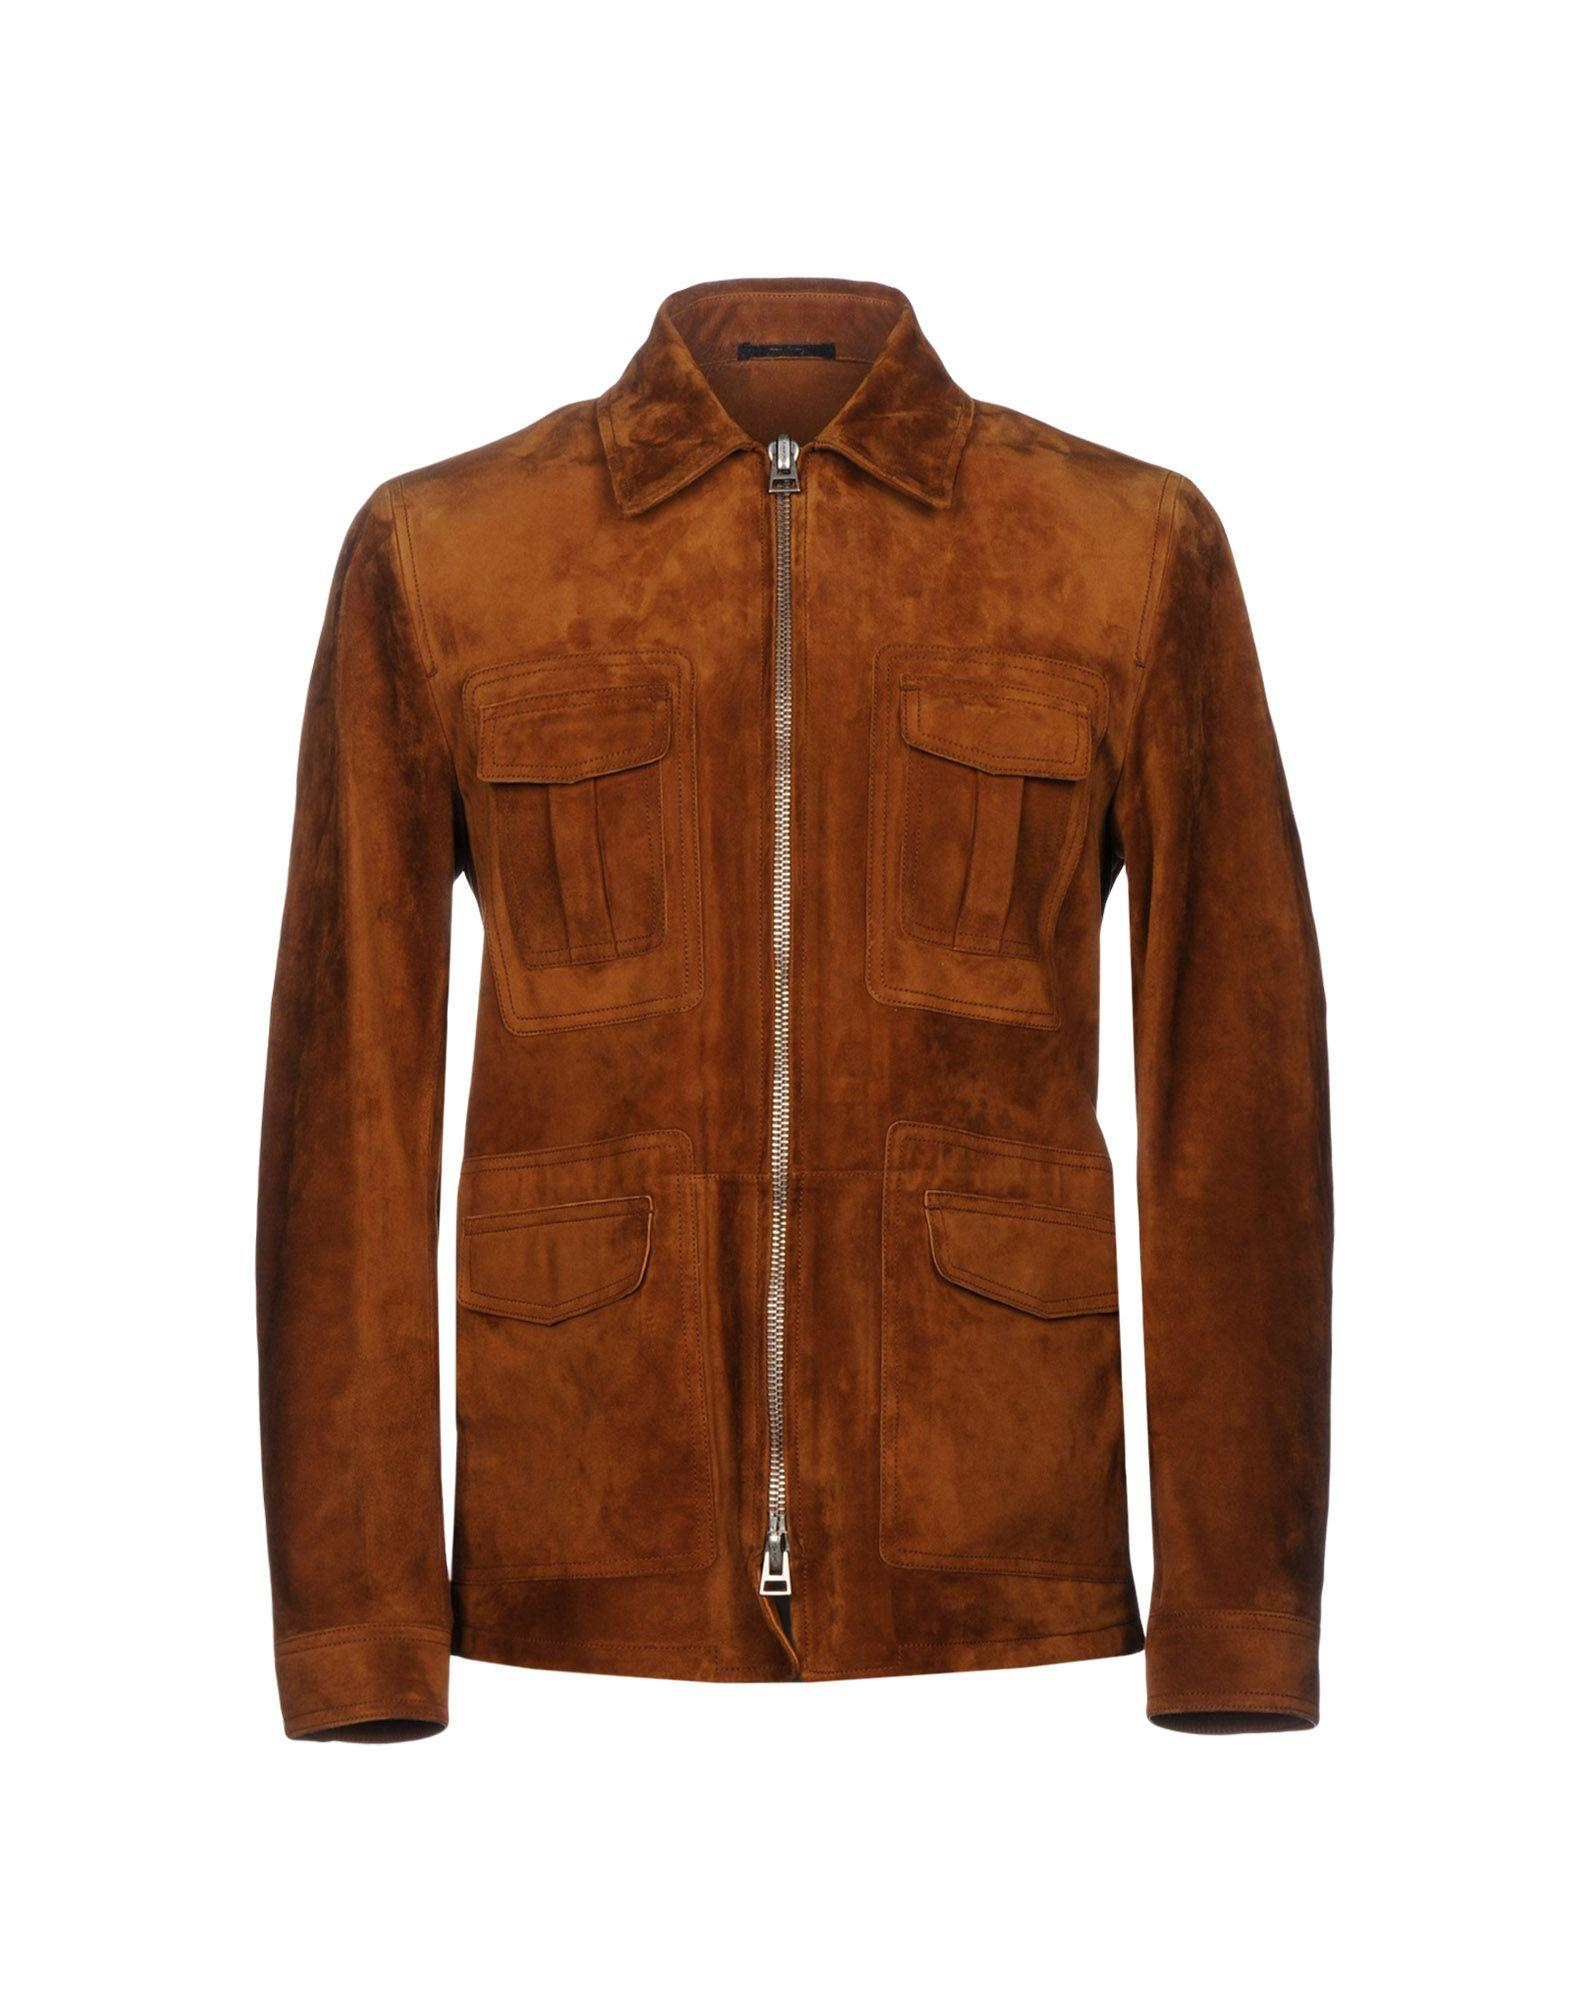 Tom Ford Jackets In Brown